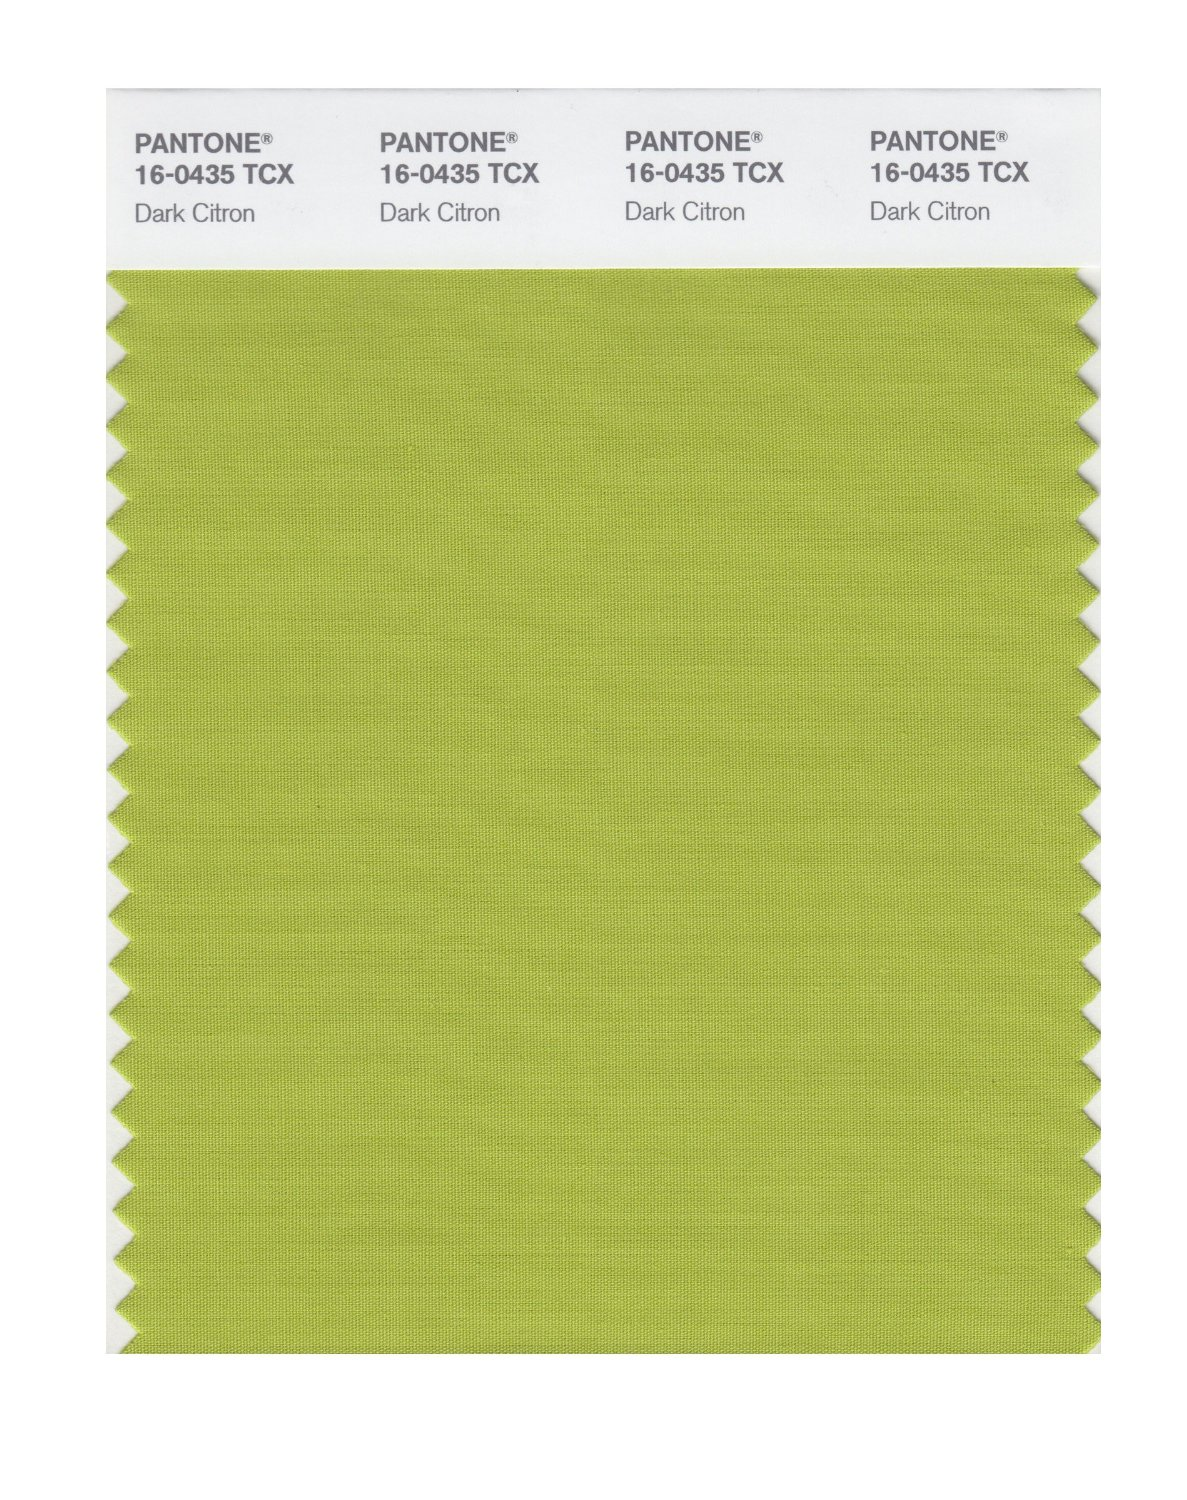 Pantone Smart Swatch 16-0435 Dark Citron